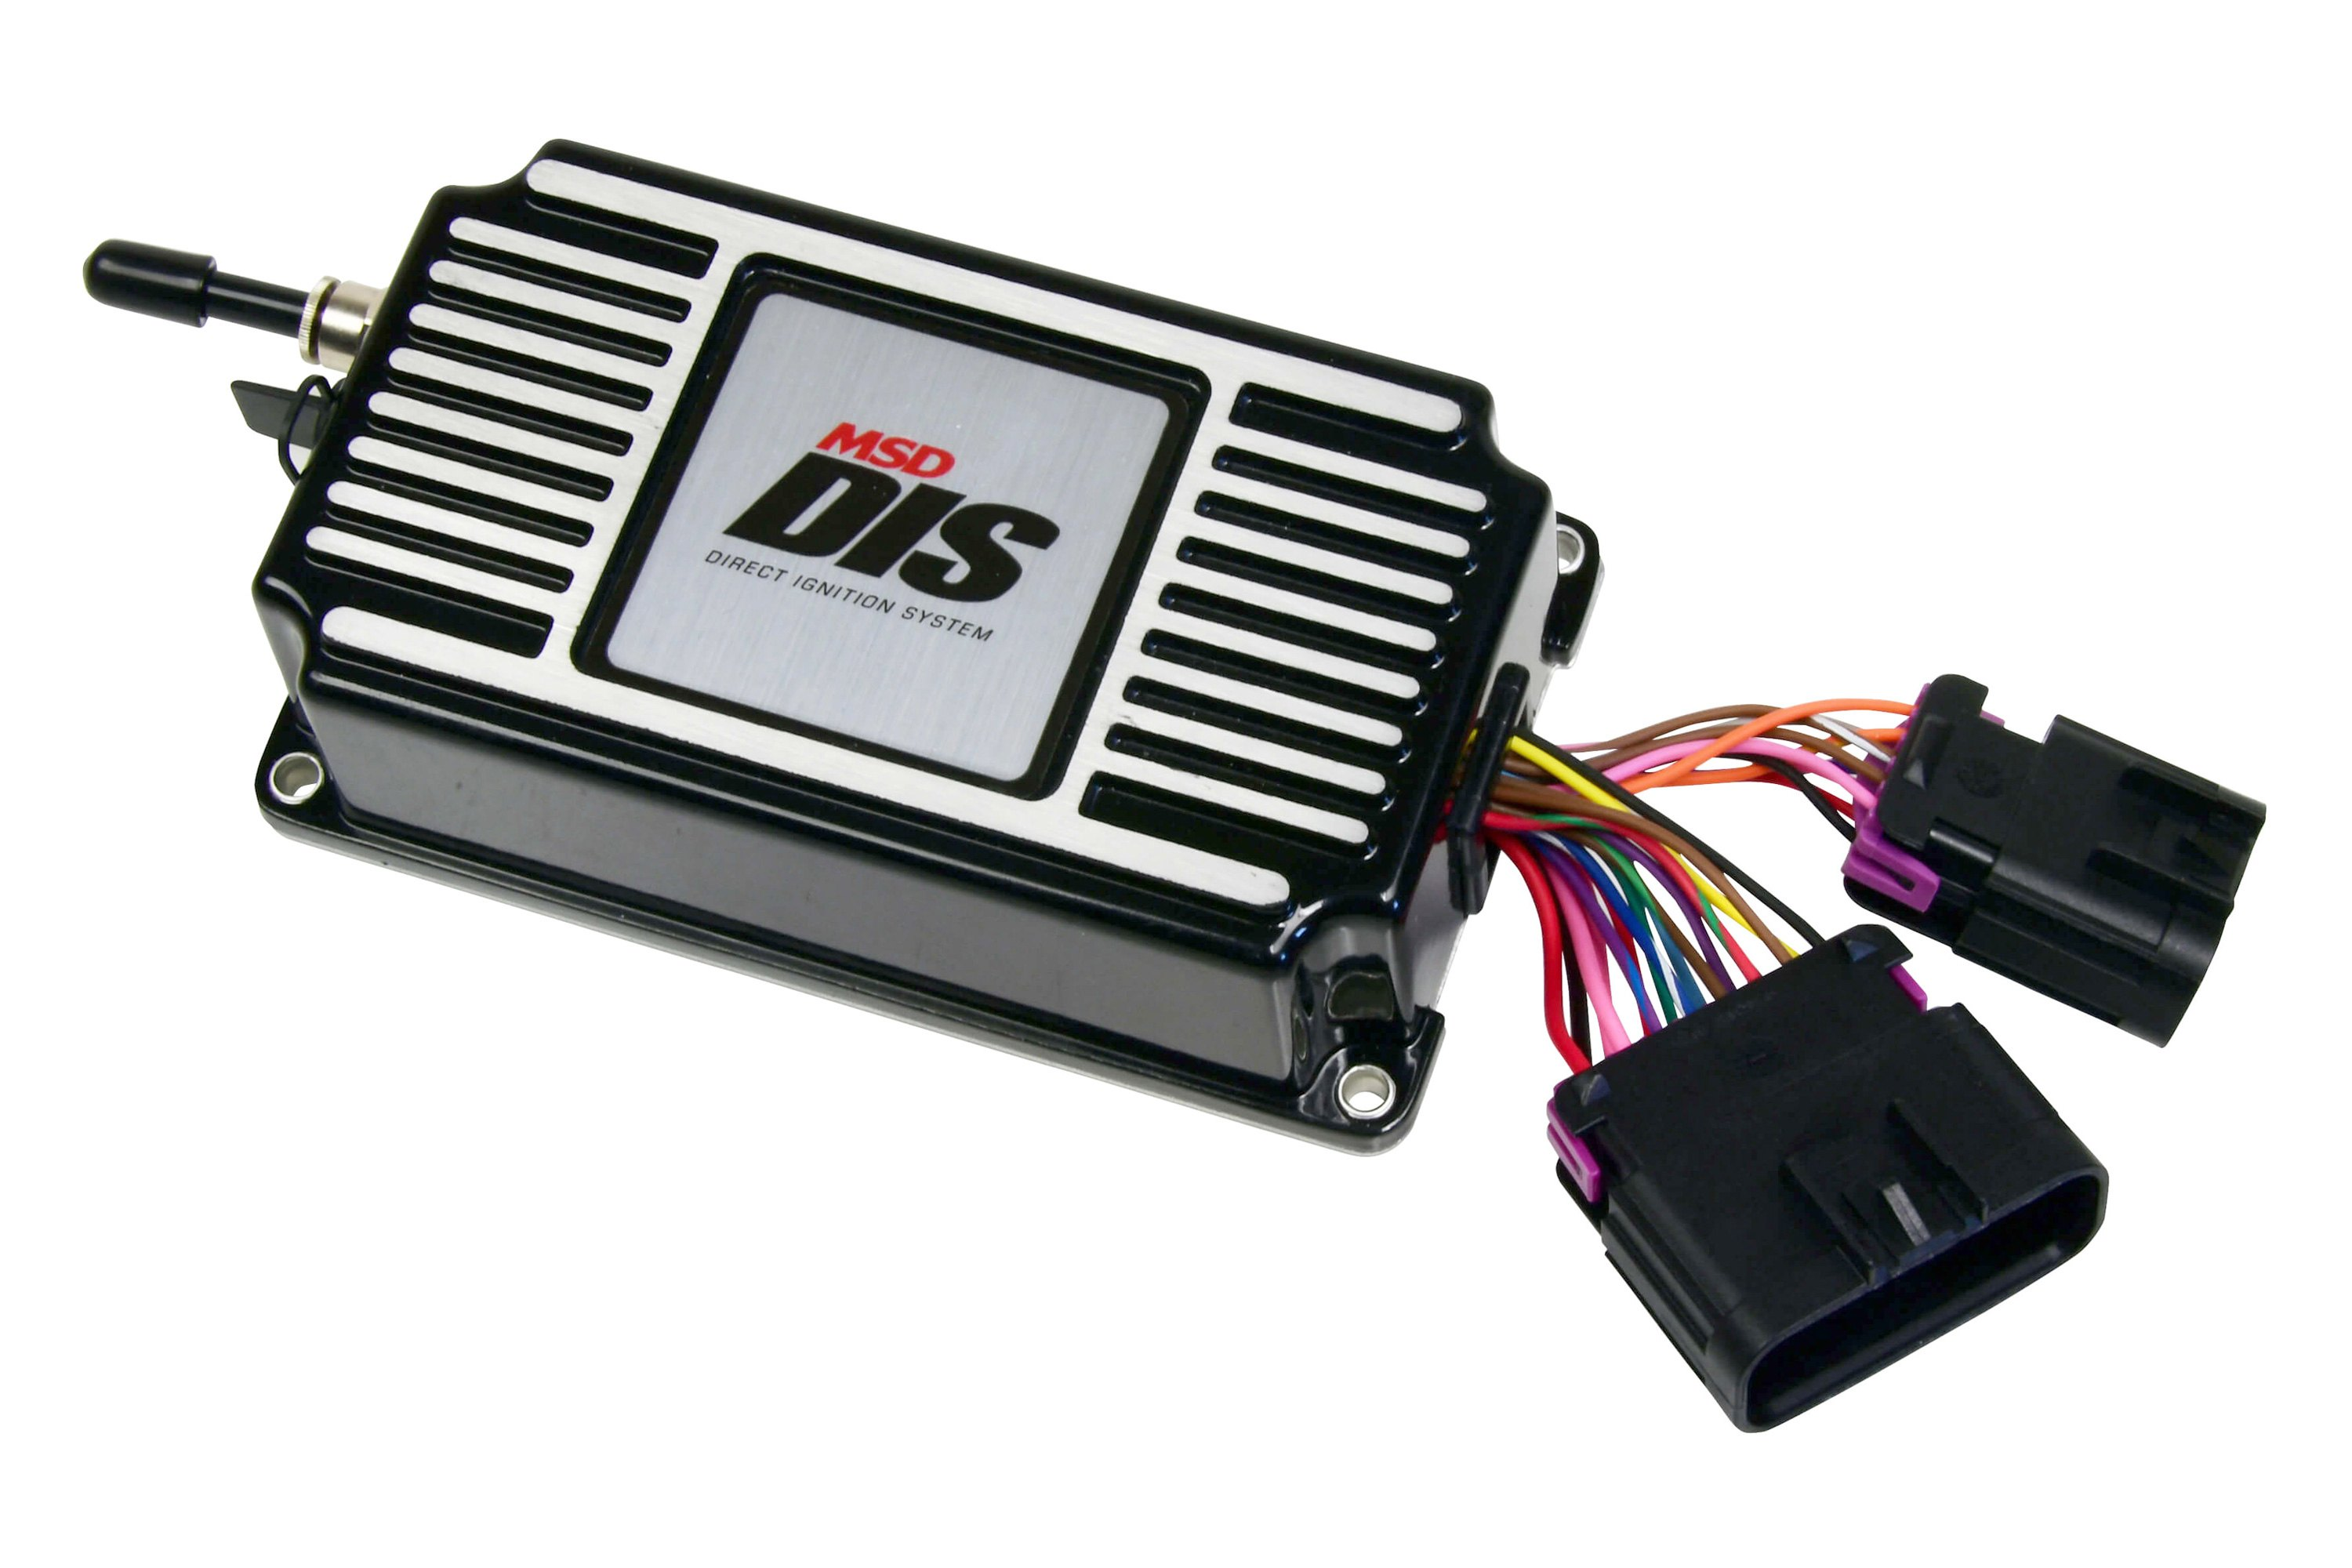 MSD® - Direct Ignition System